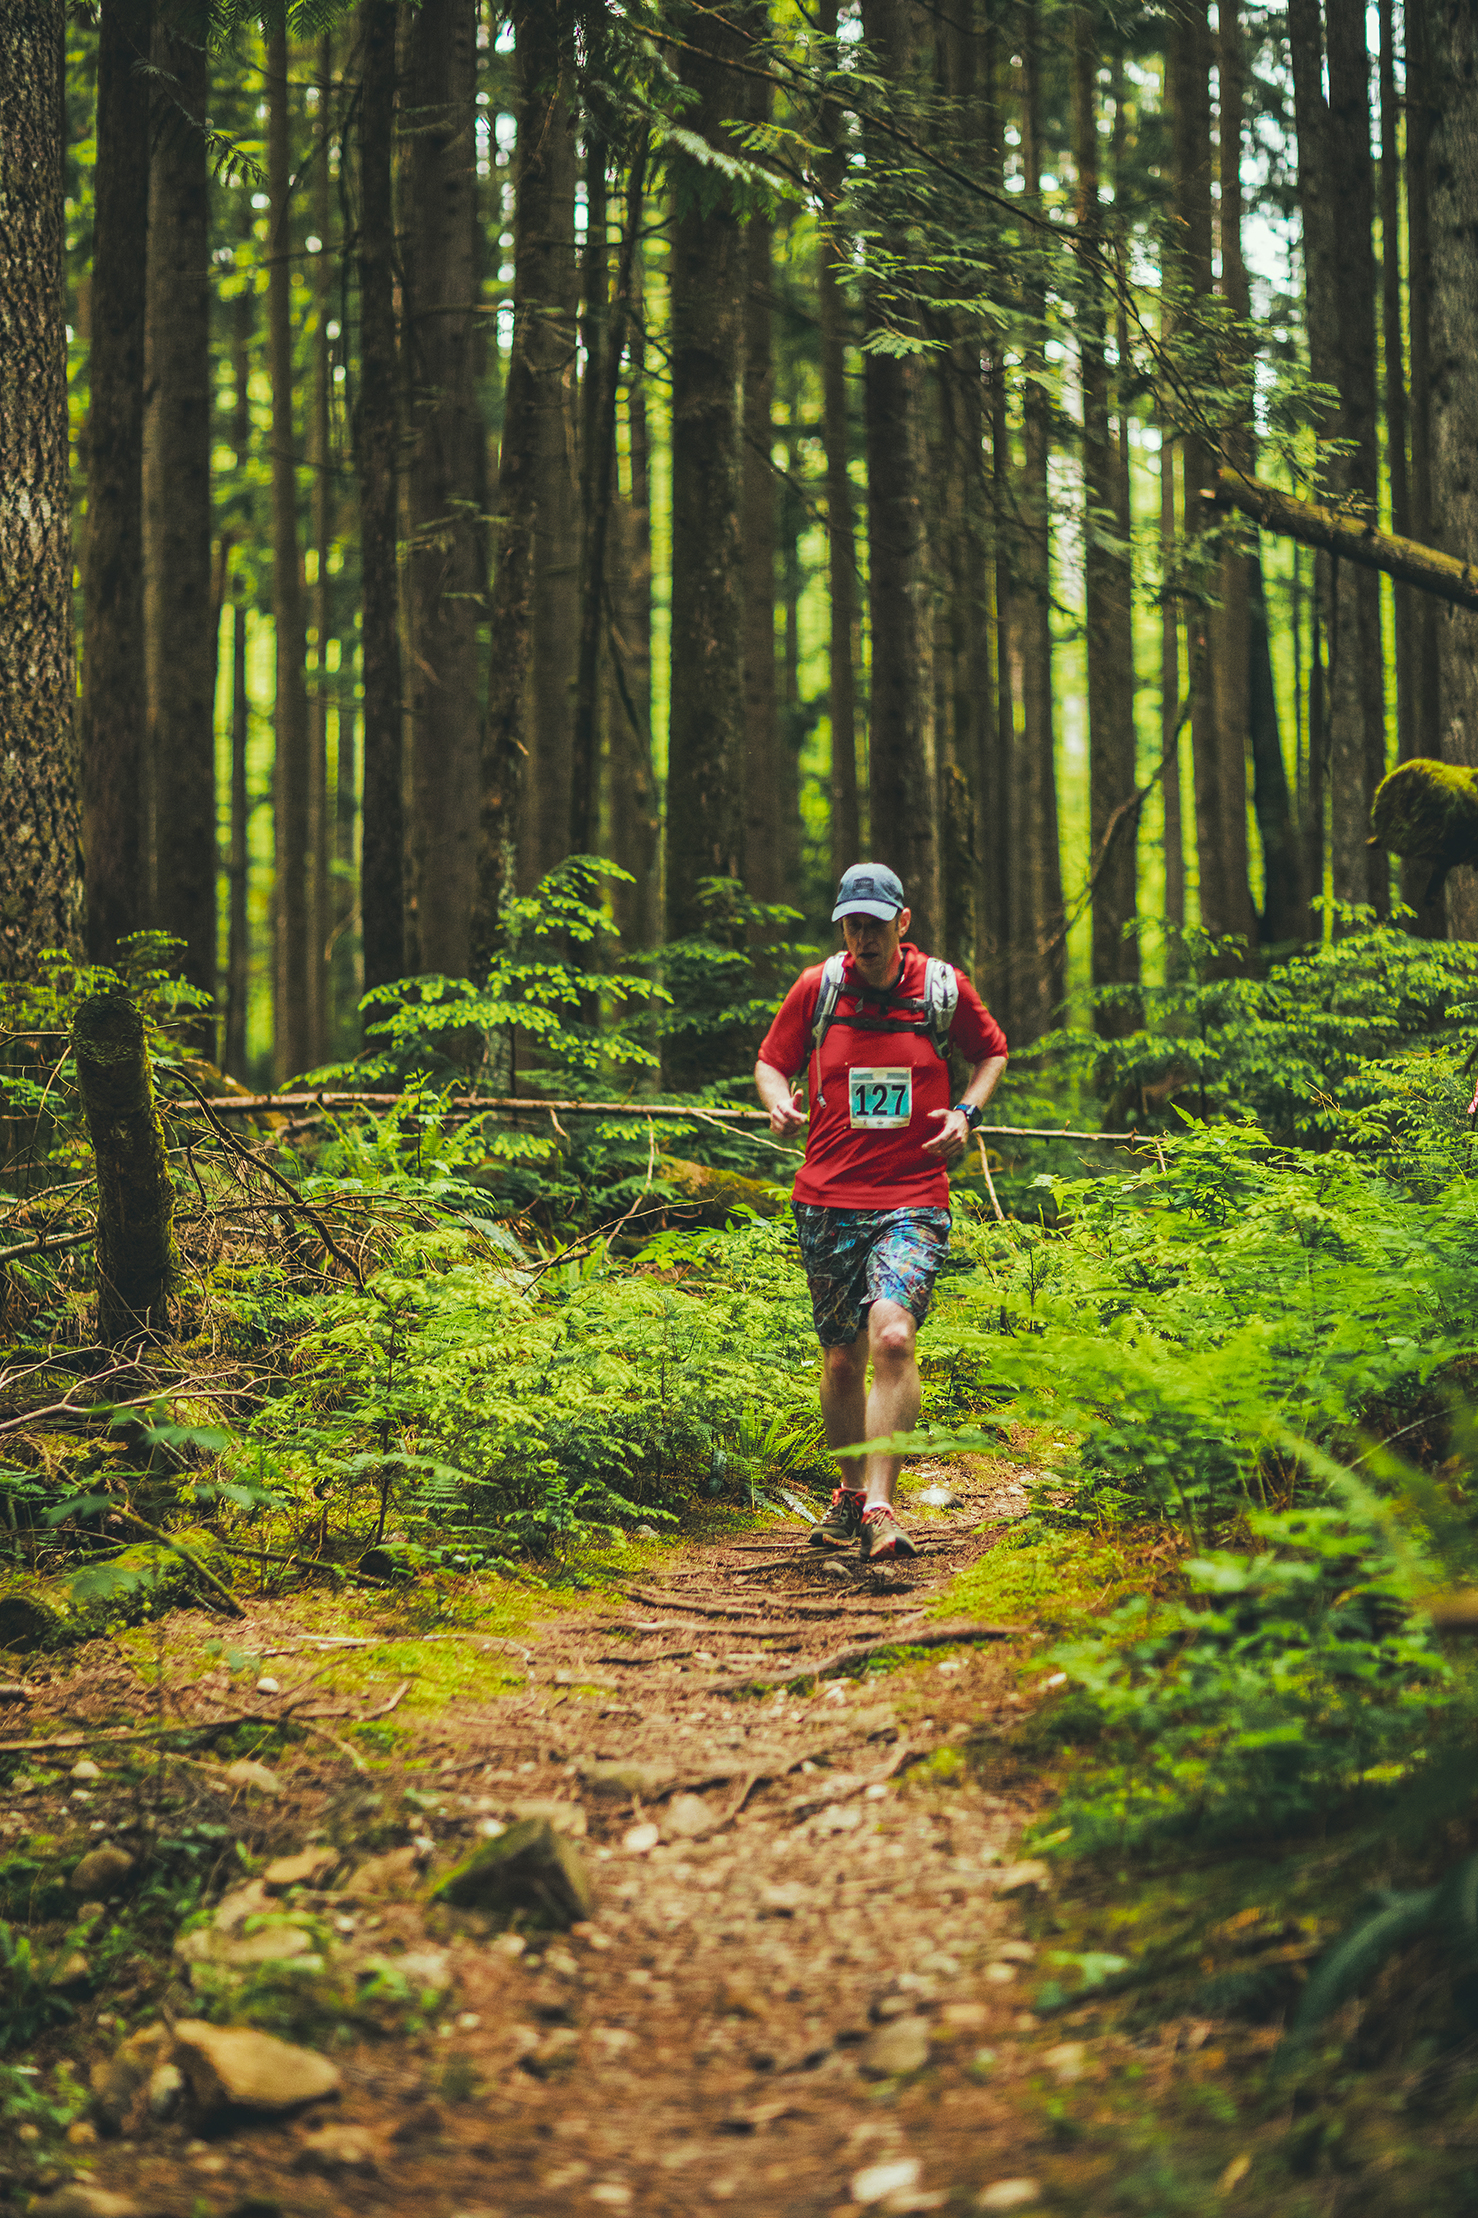 Fraser Valley Trail Races - Bear Mountain - IMG_1874 by Brice Ferre Studio - Vancouver Portrait Adventure and Athlete Photographer.jpg